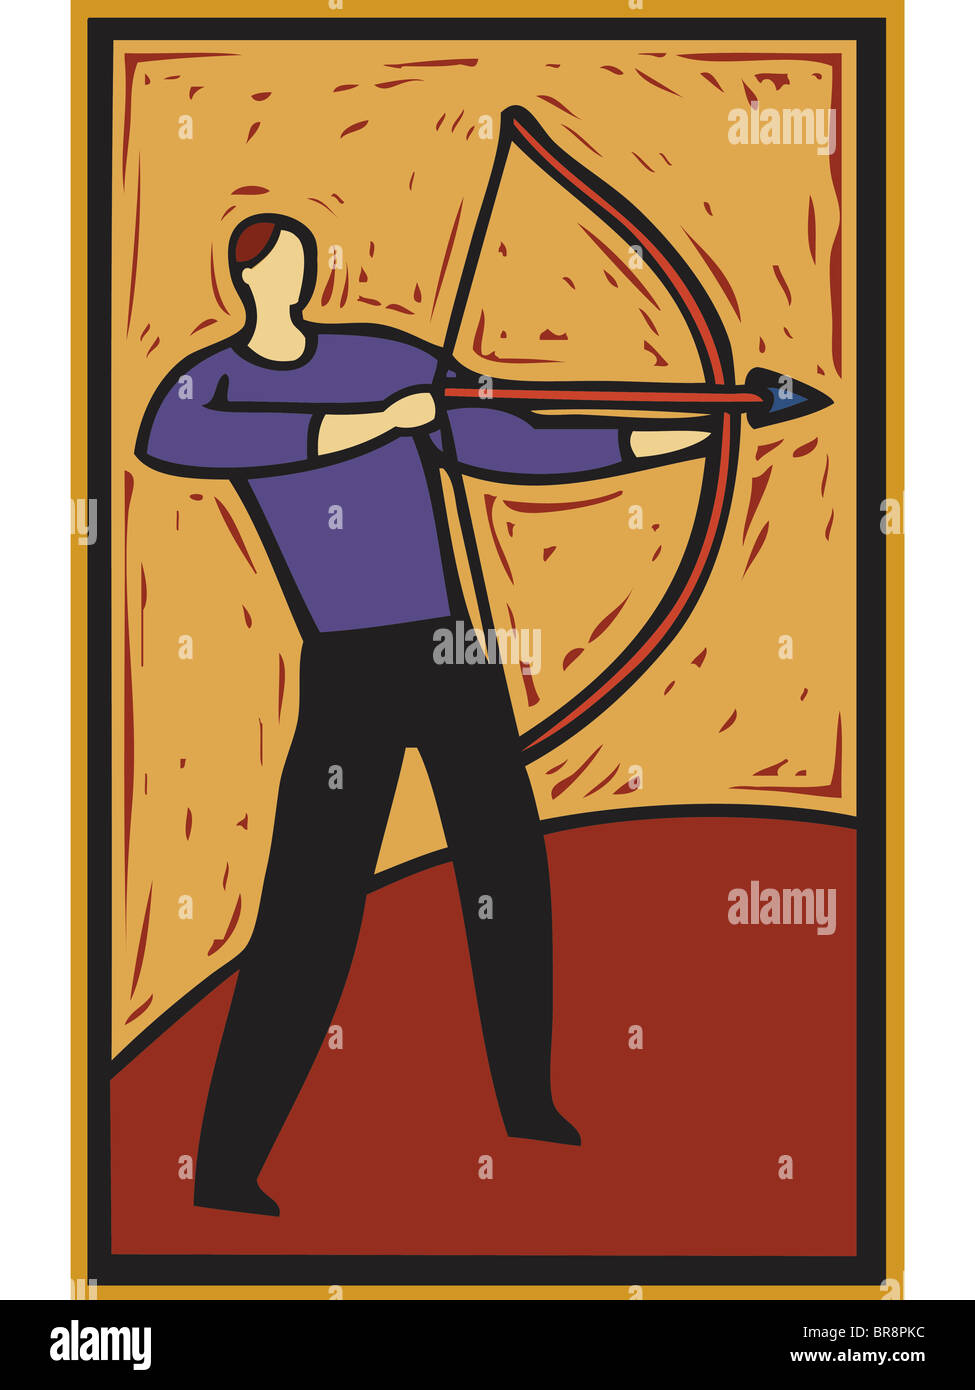 ilustration of a man using a bow and arrow - Stock Image